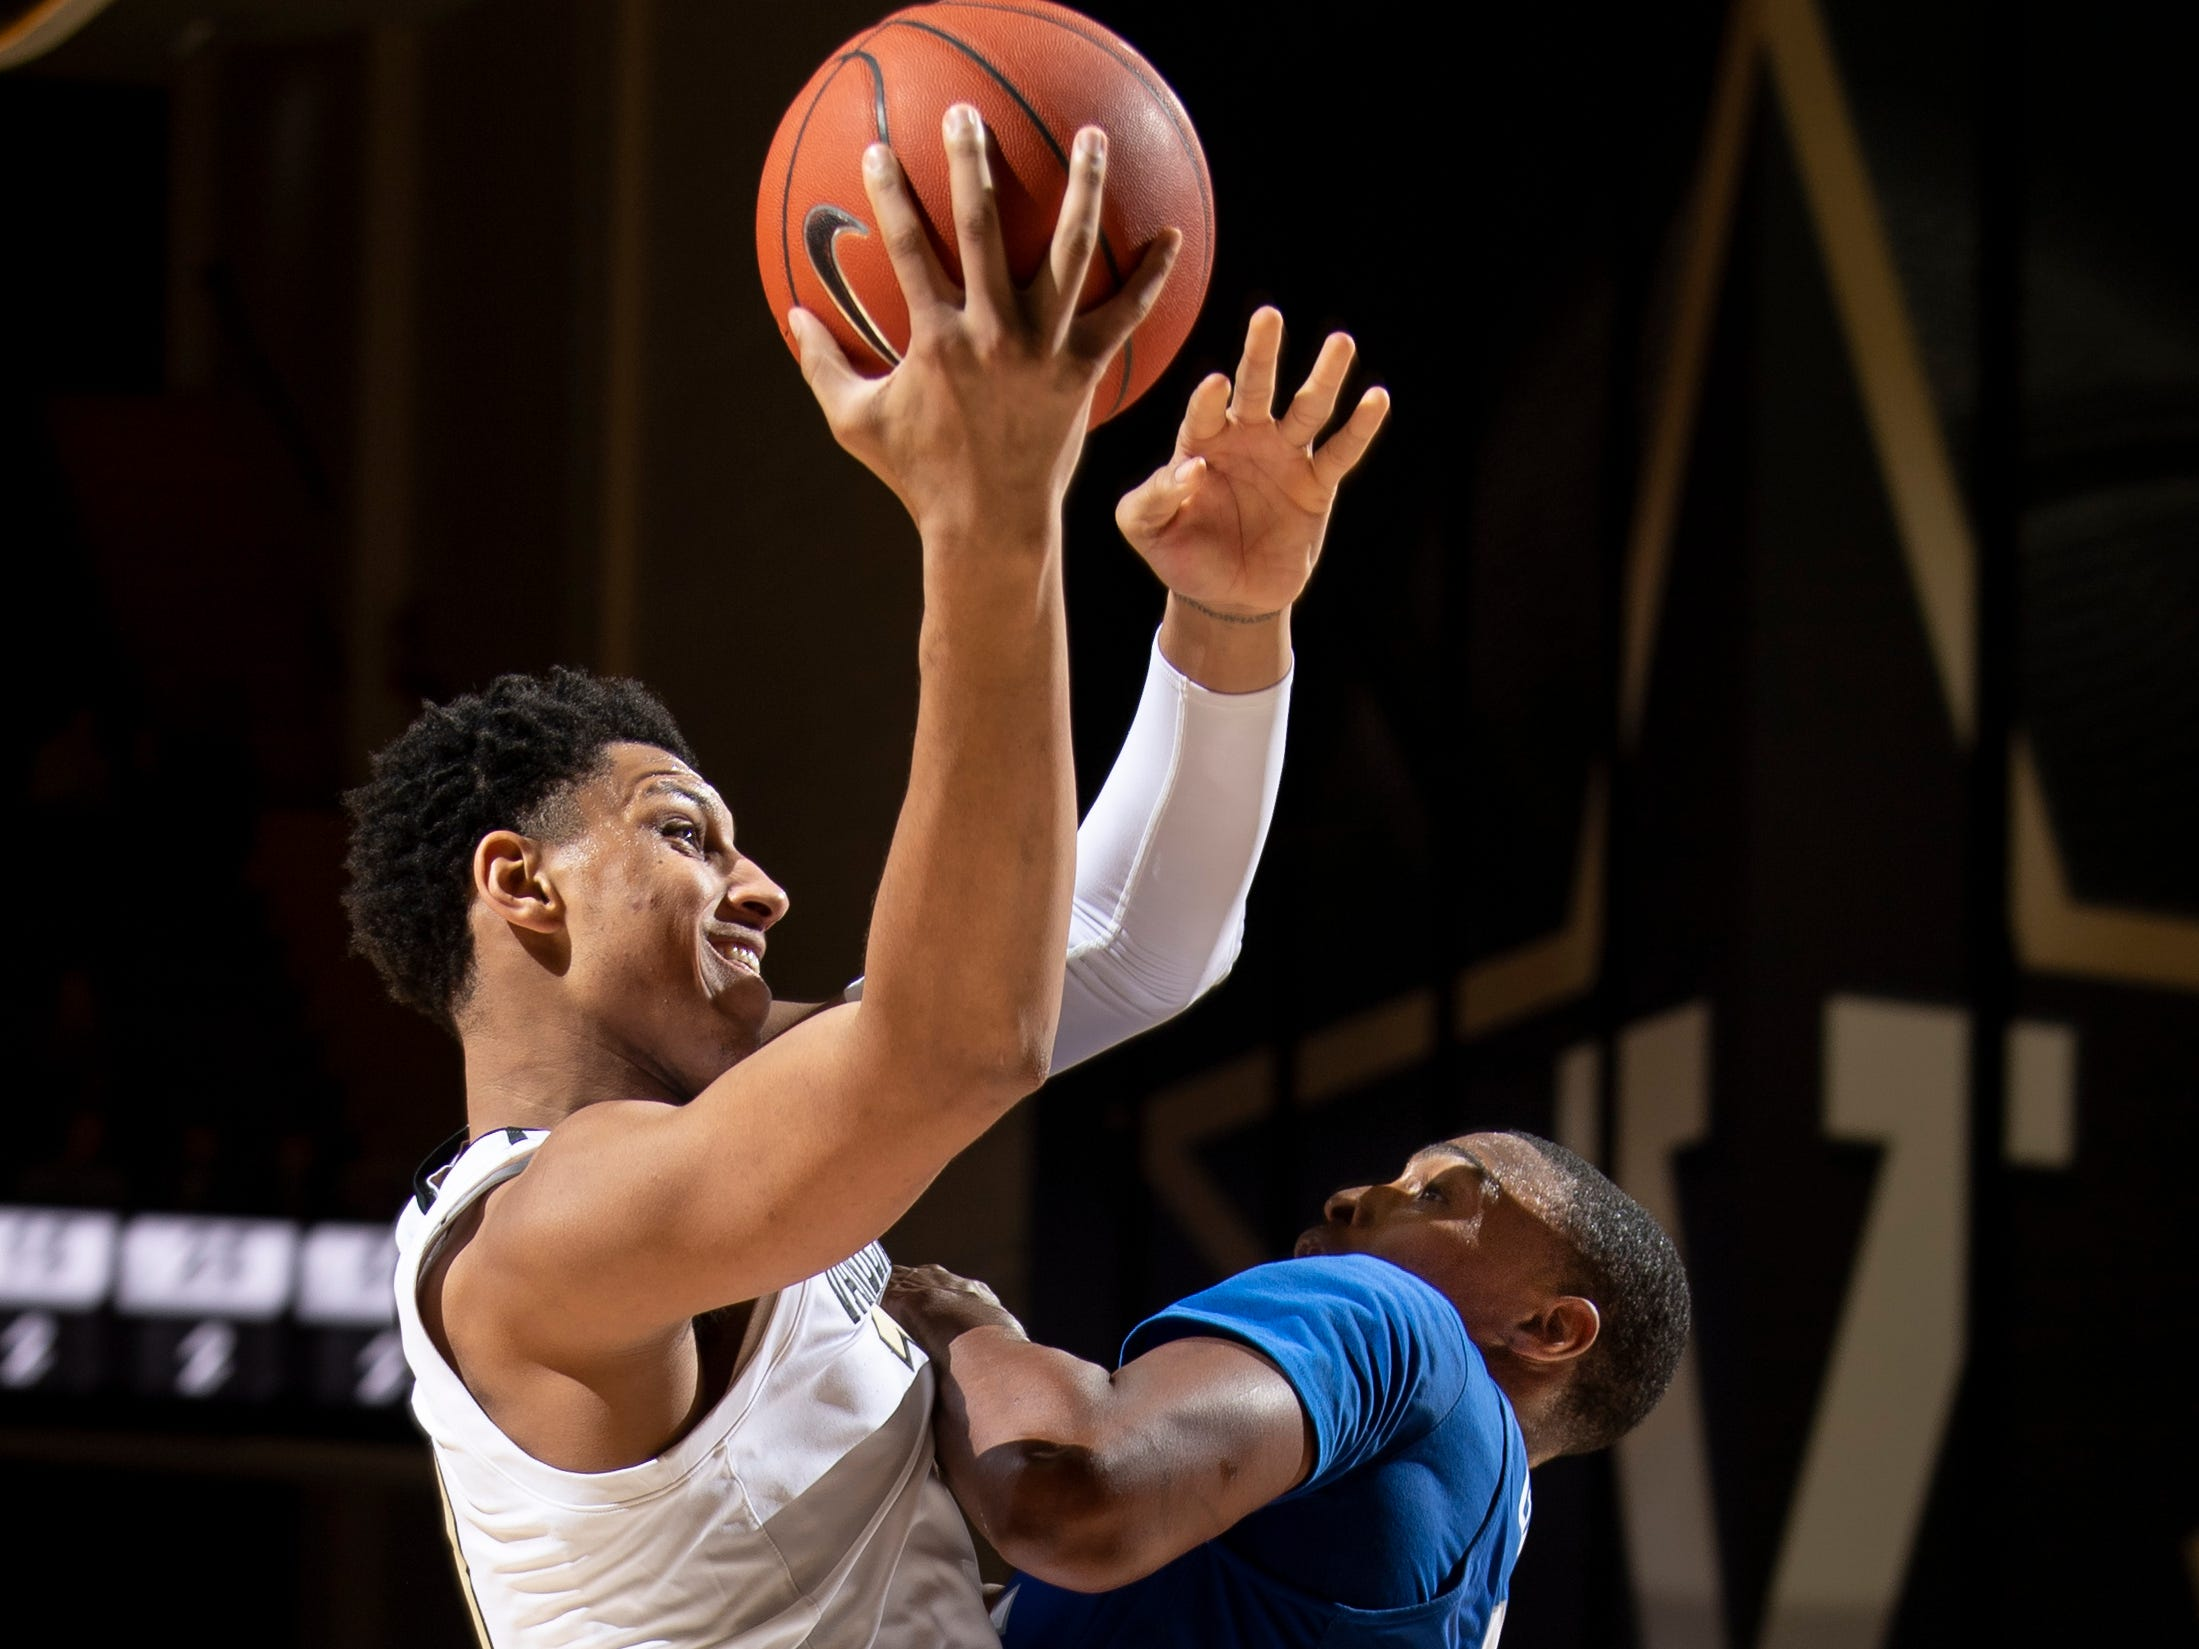 Vanderbilt forward Matthew Moyer (13) is fouled by MTSU forward Karl Gamble (25) during the first half at Memorial Gym in Nashville, Tenn., Wednesday, Dec. 5, 2018.